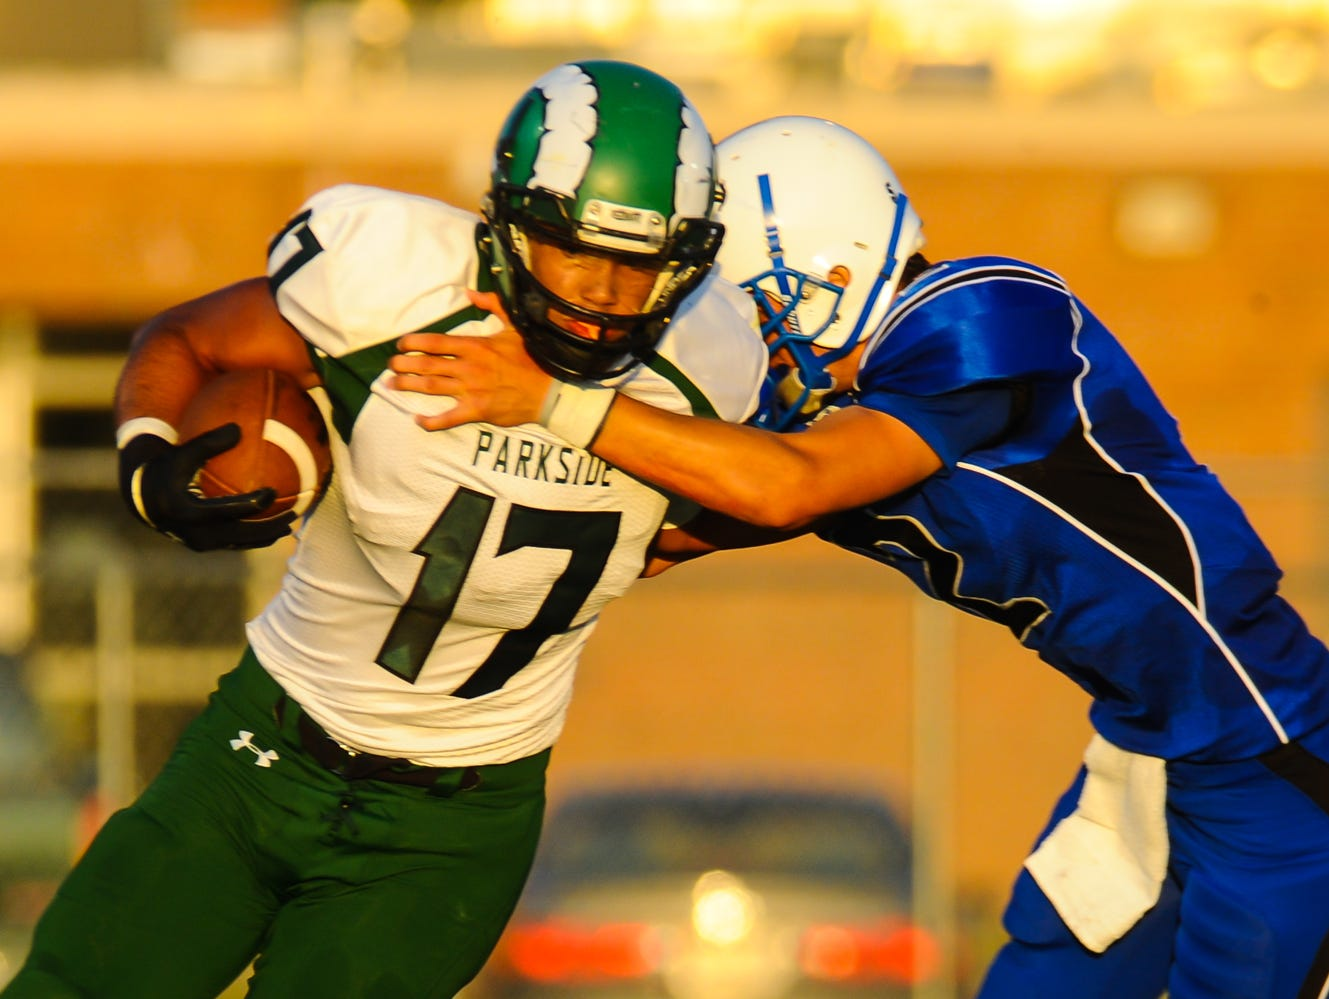 Parkside's Malcom Downing was chosen to the First-Team Defense for the Bayside Conference Football Awards.